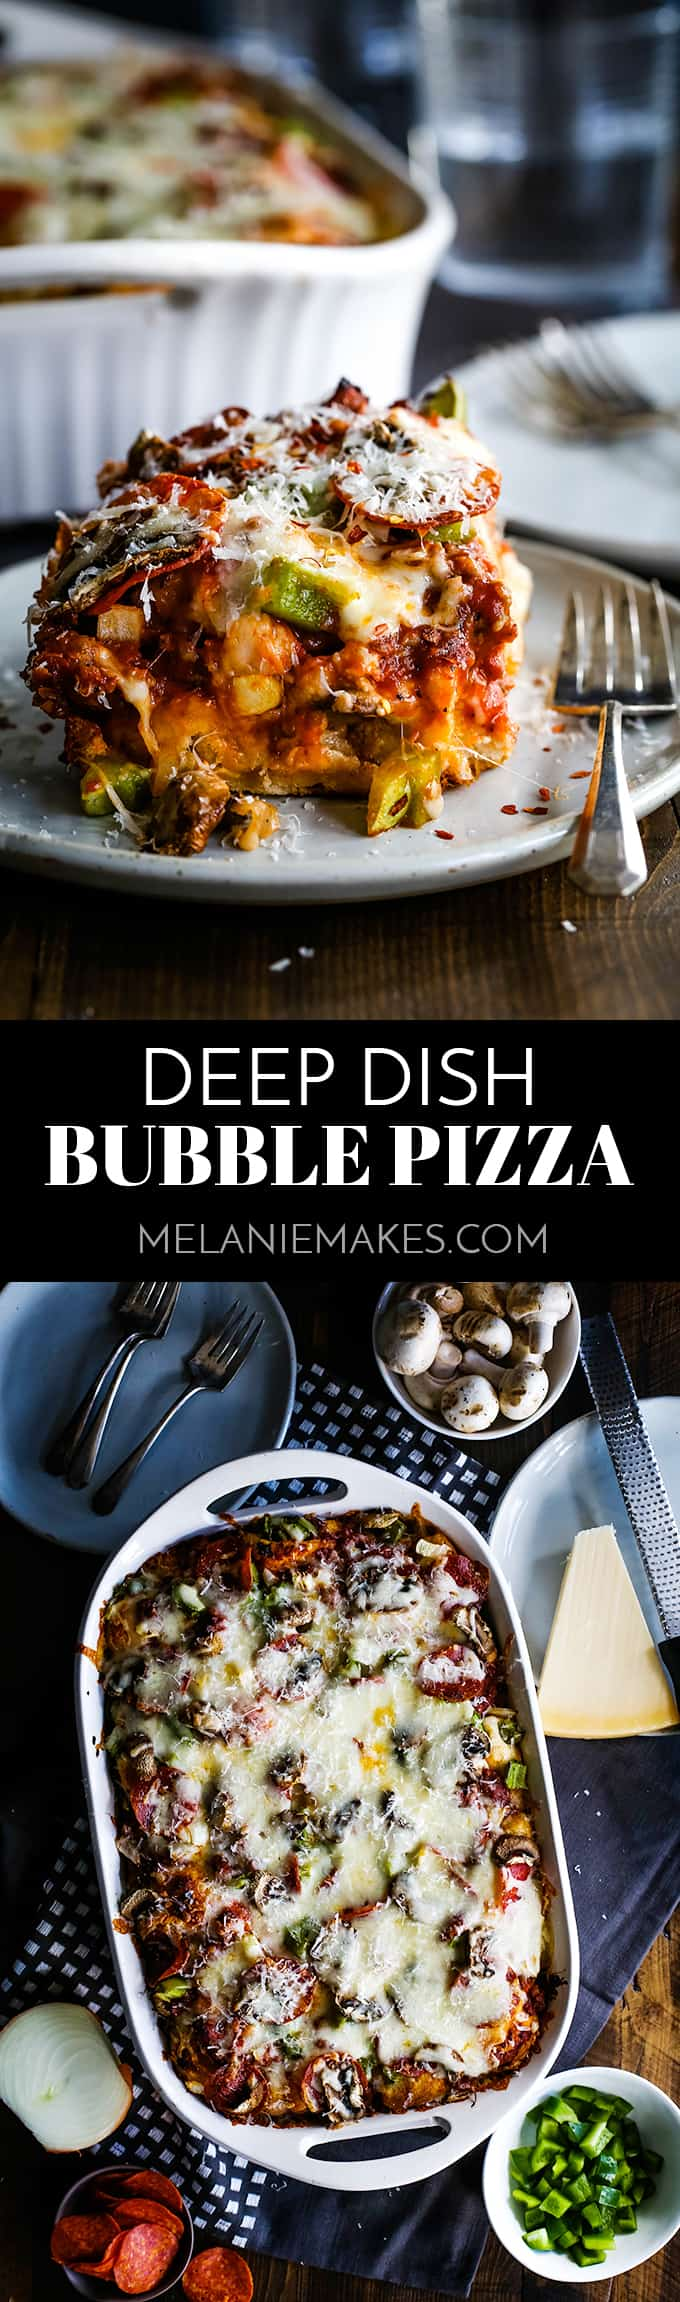 No yeast or rolling dough required - the no-fuss base of this Deep Dish Bubble Pizza comes from refrigerated biscuits! #pizza #biscuits #deepdish #easyrecipe #dinnerrecipe #pepperoni #cheese